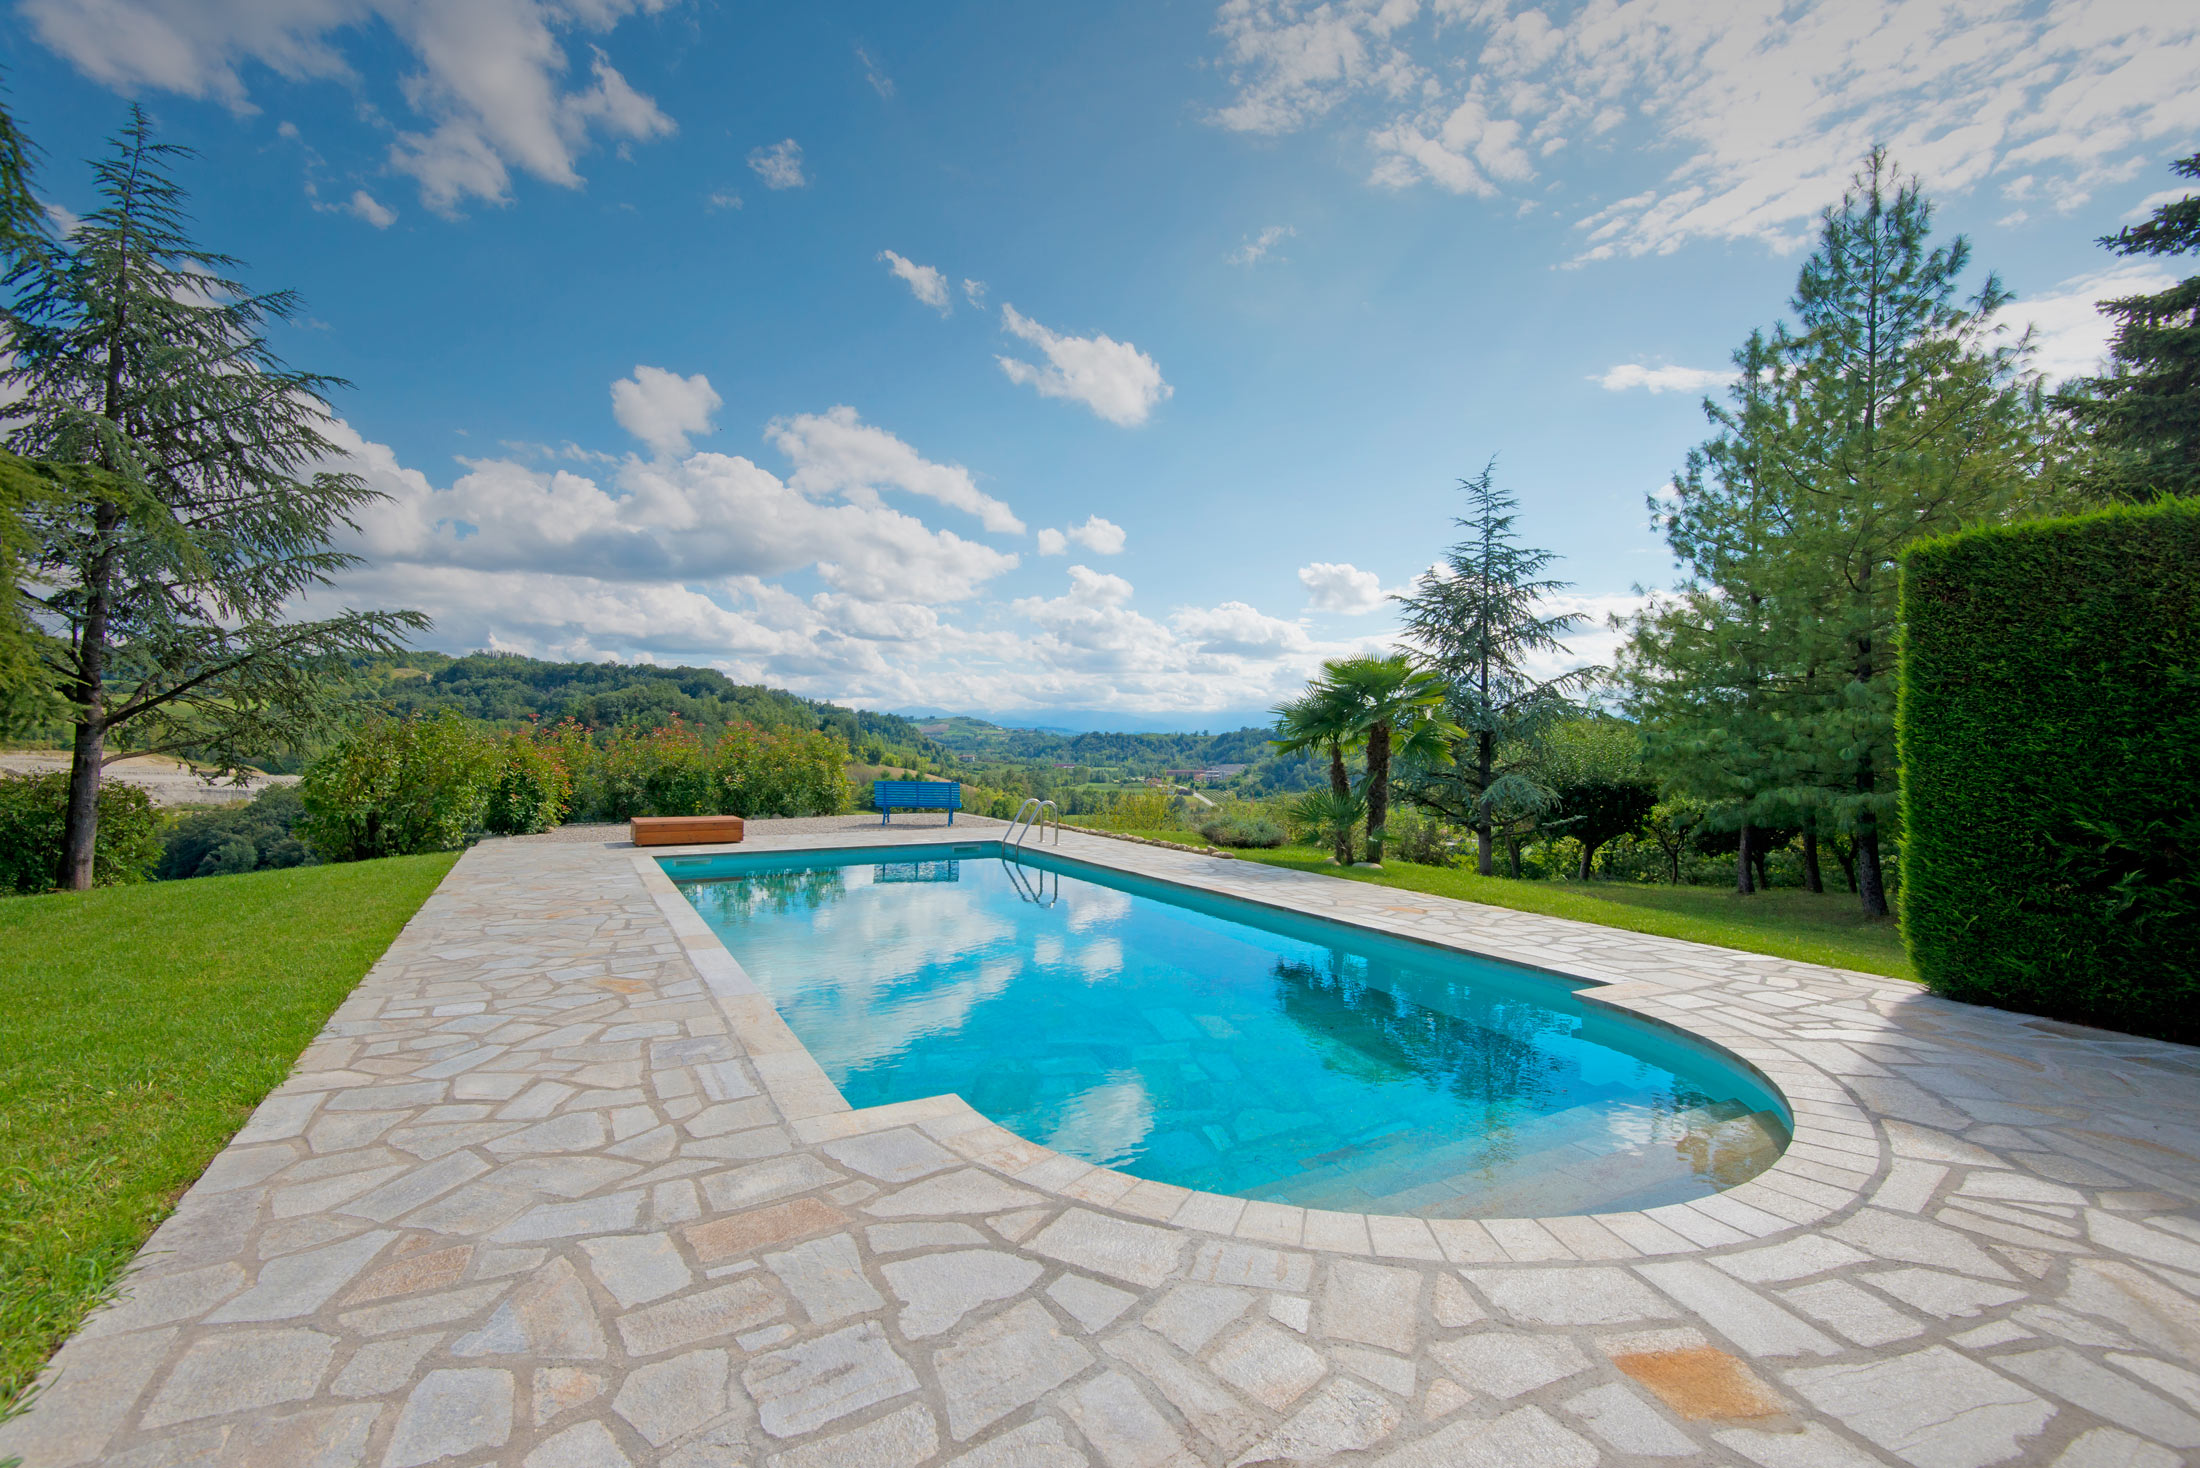 Swimming pool in a  luxury villa in Piedmont (Piemonte) Italy